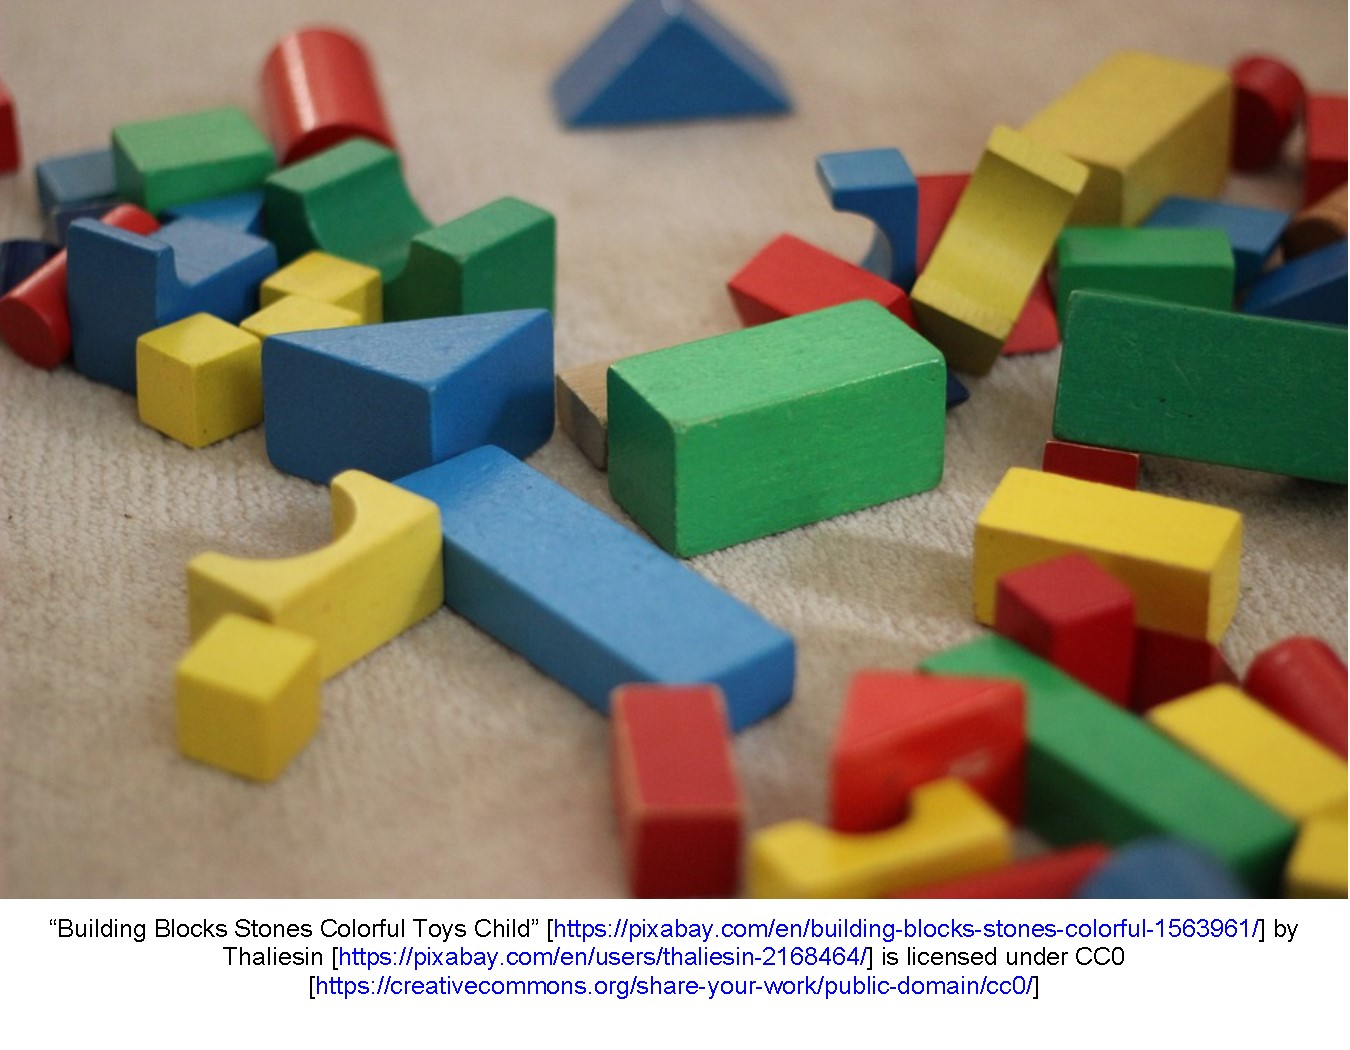 Colorful wooden blocks scattered on the floor